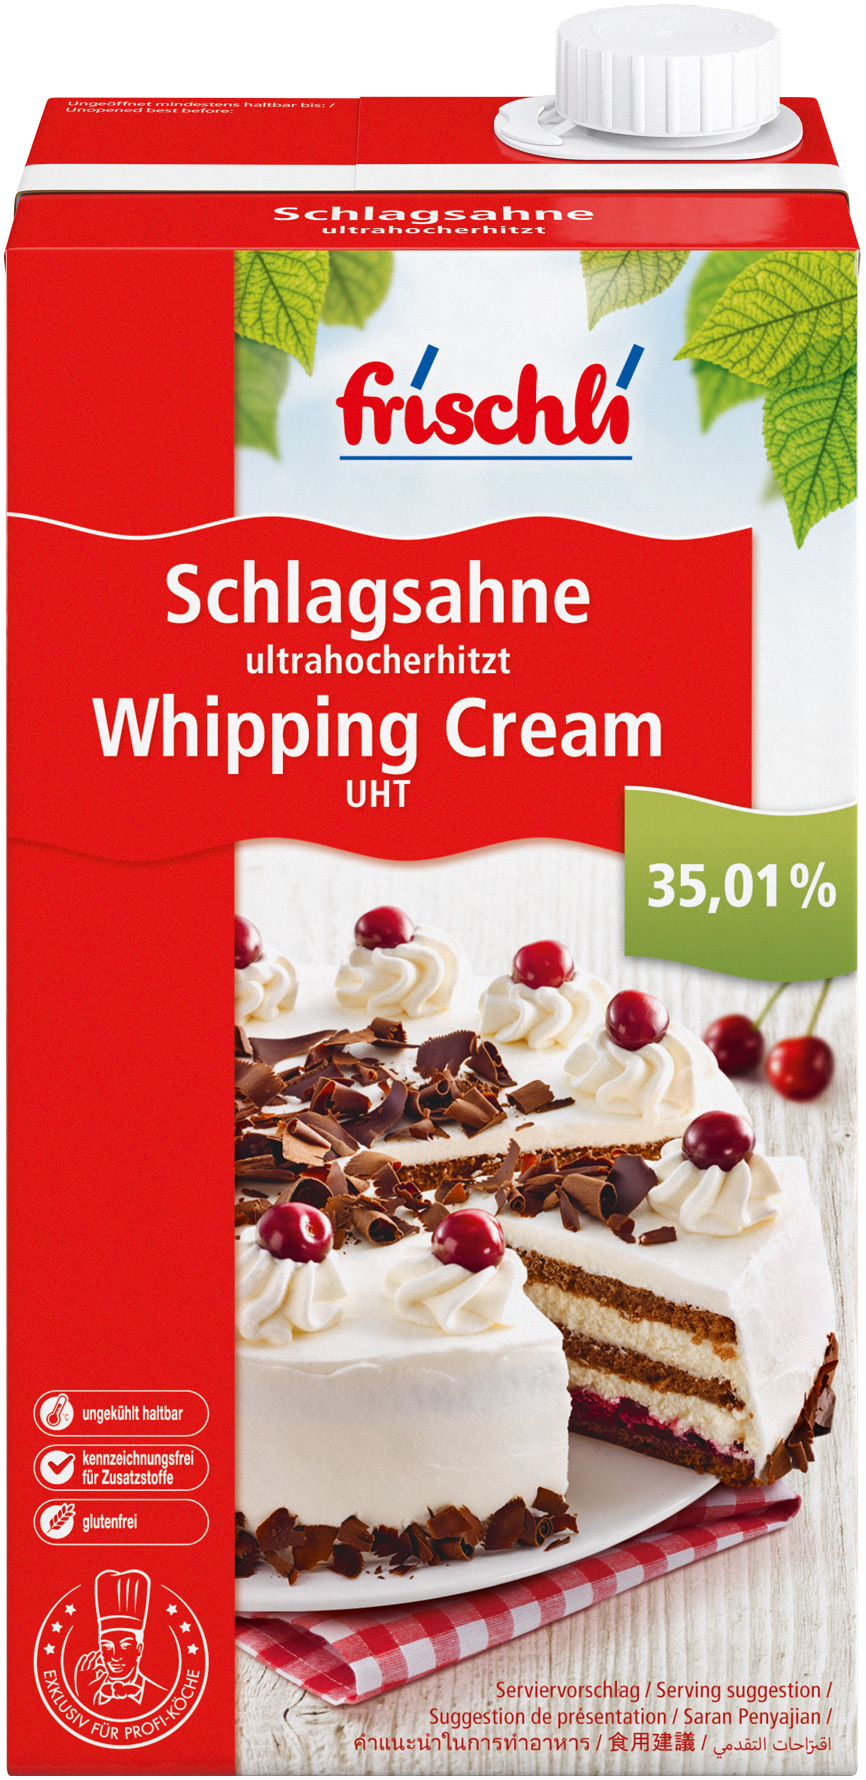 Kuchen 20 Cm Frischli Dairy And Food Downloads Whipping Cream